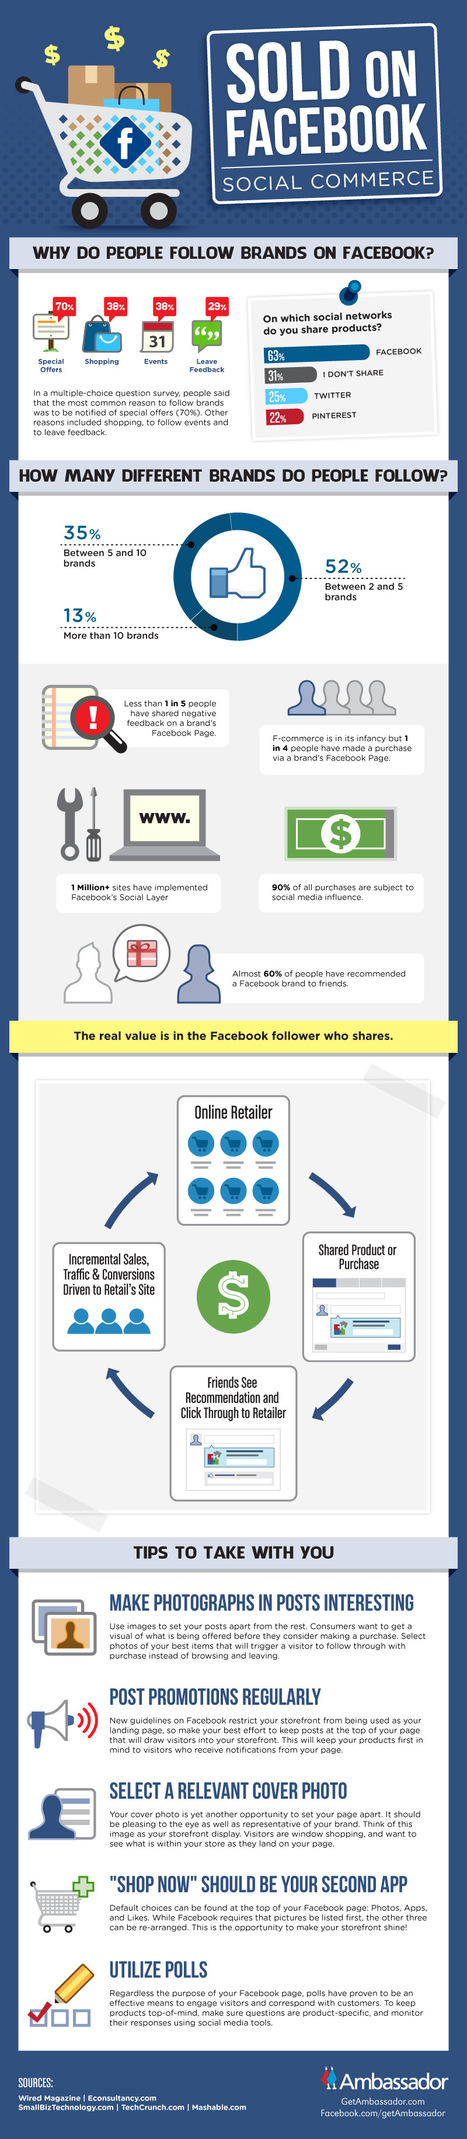 INFOGRAPHIC: What Makes People Sold On Brands On Facebook? | Personal Branding and Professional networks | Scoop.it